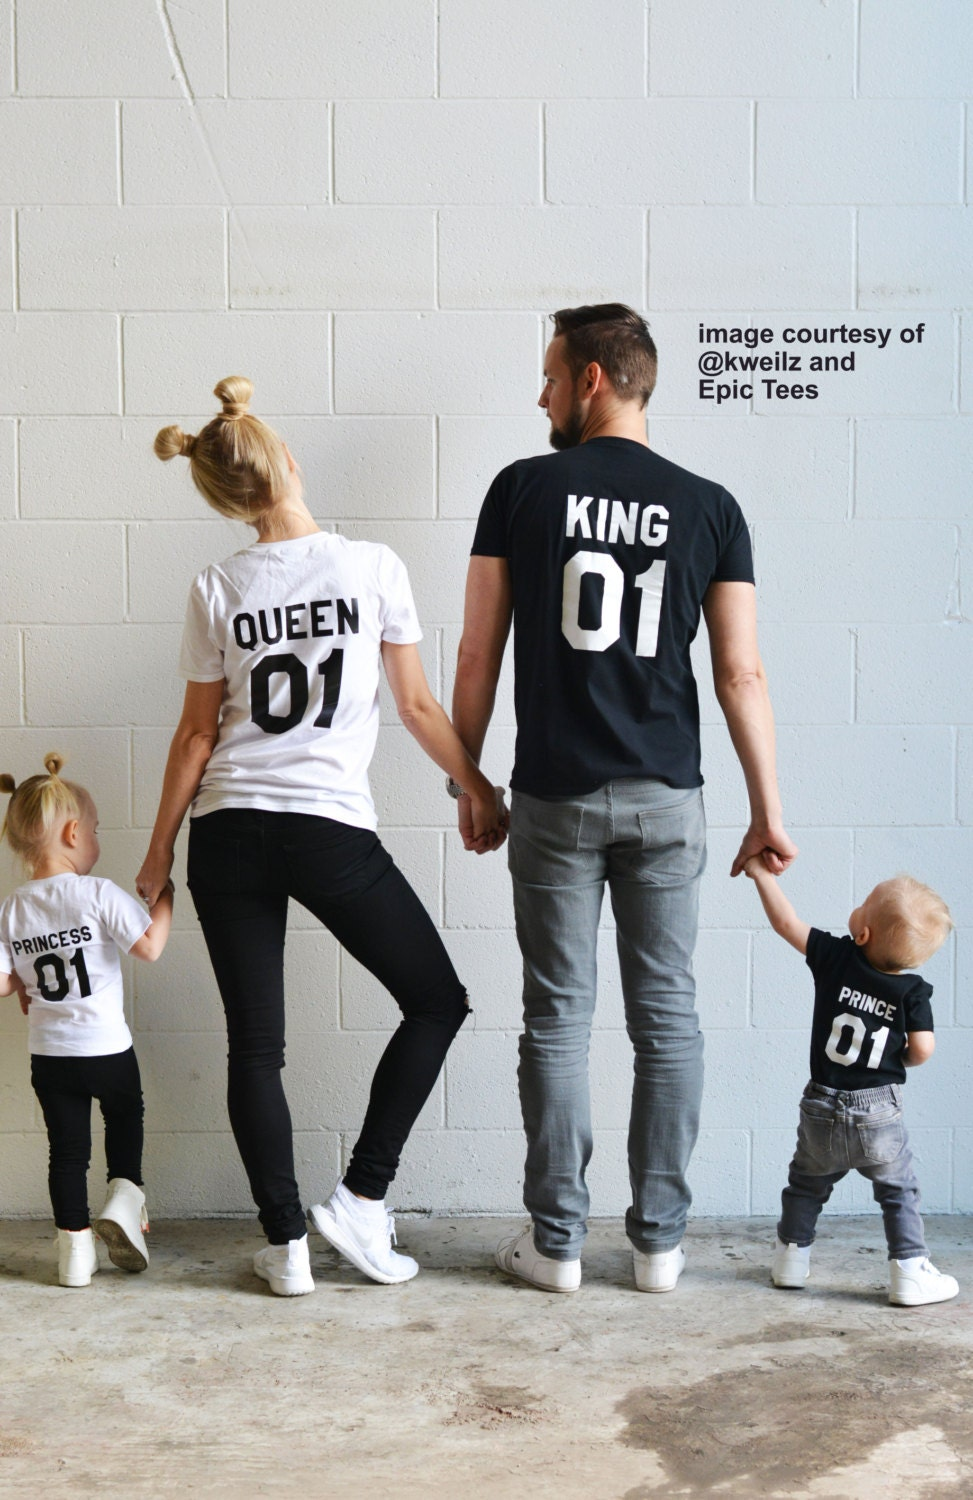 king queen prince princess 01 father mother daughter son. Black Bedroom Furniture Sets. Home Design Ideas